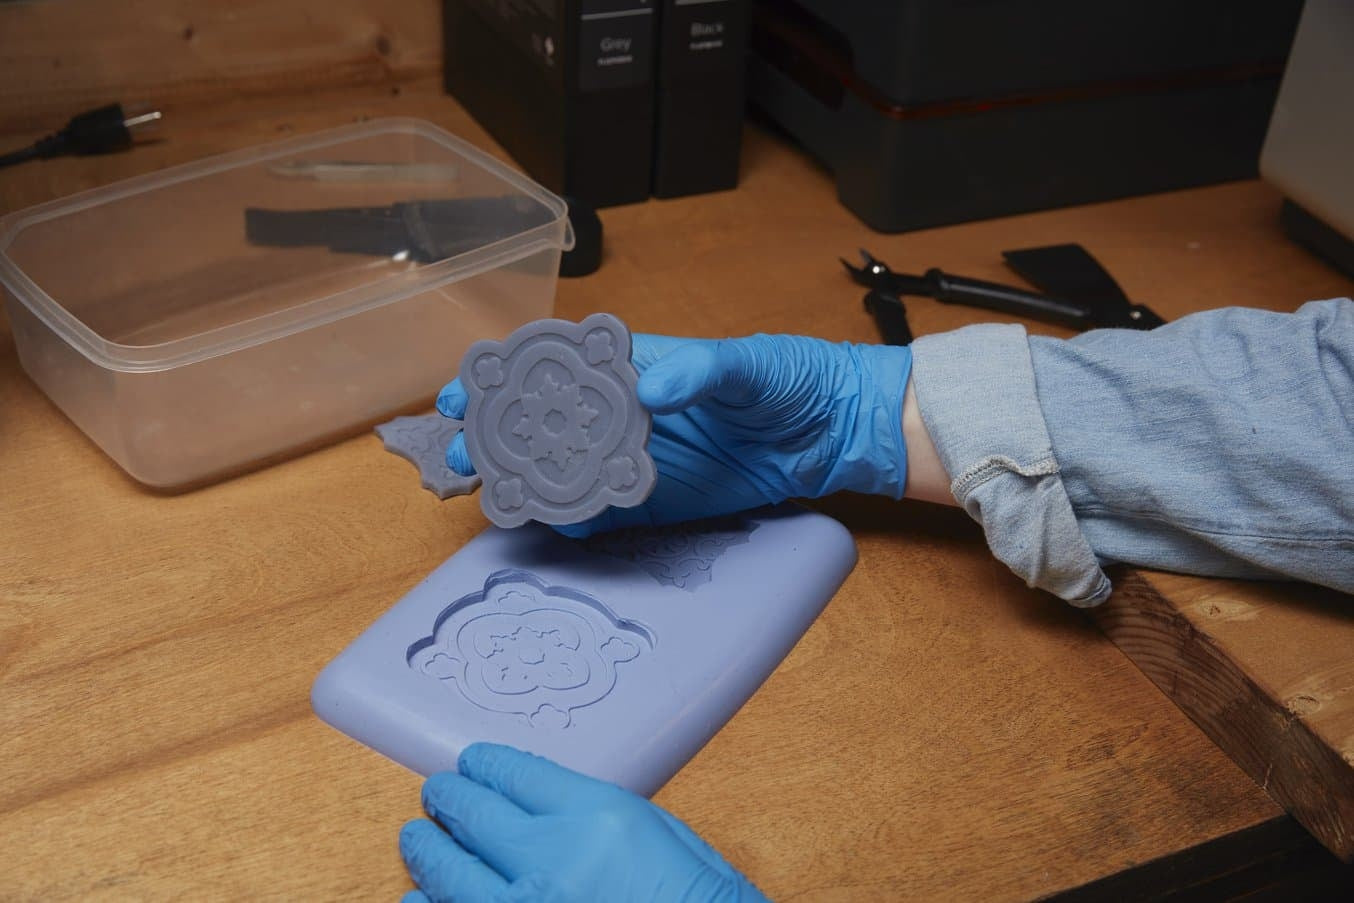 How to Make Silicone Molds for Resin